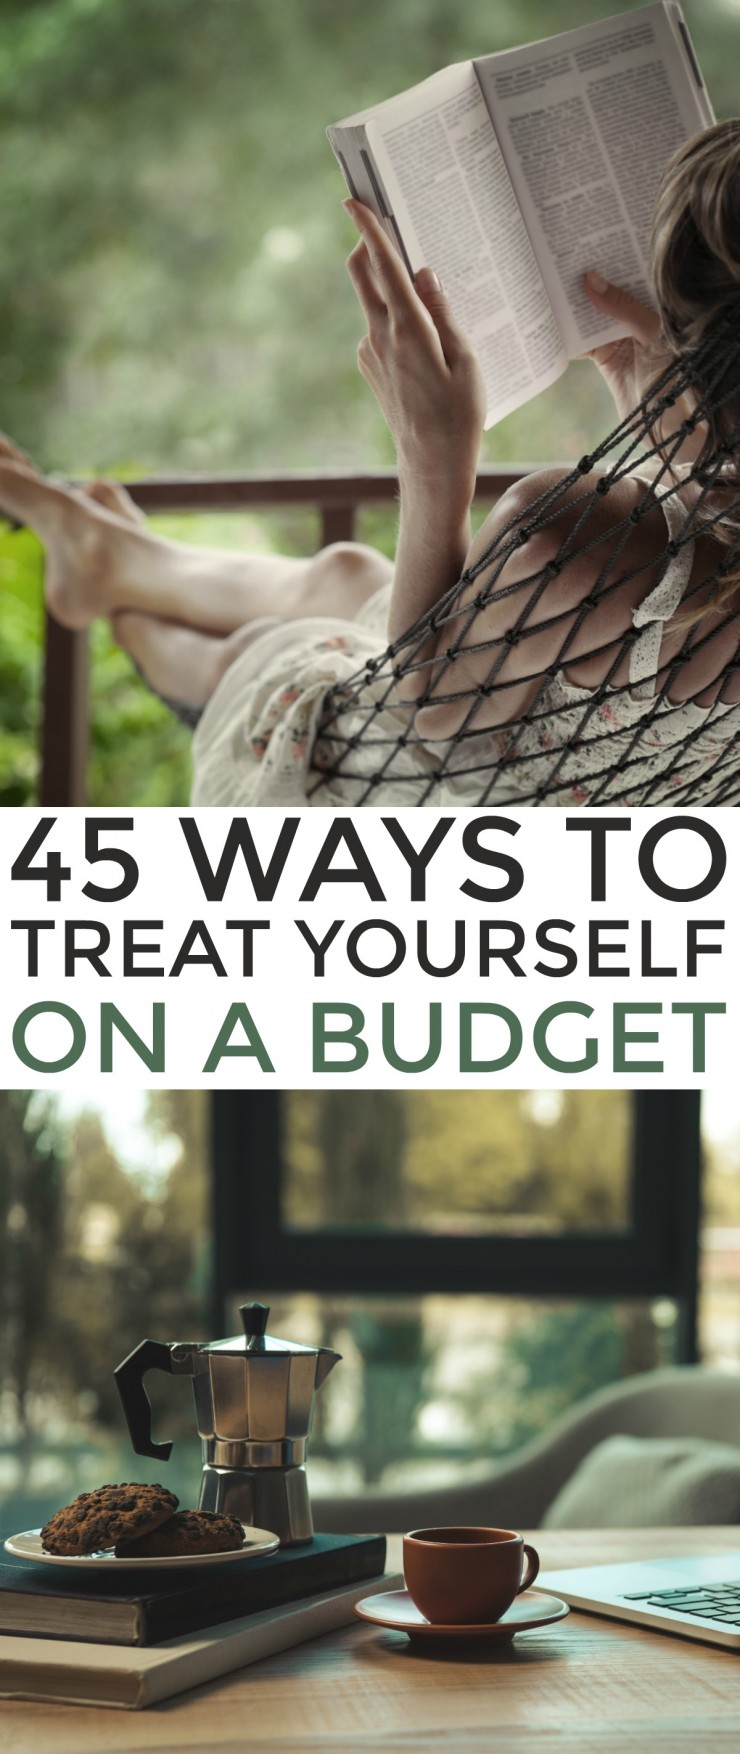 45 Ways to Treat Yourself Without Spending Money